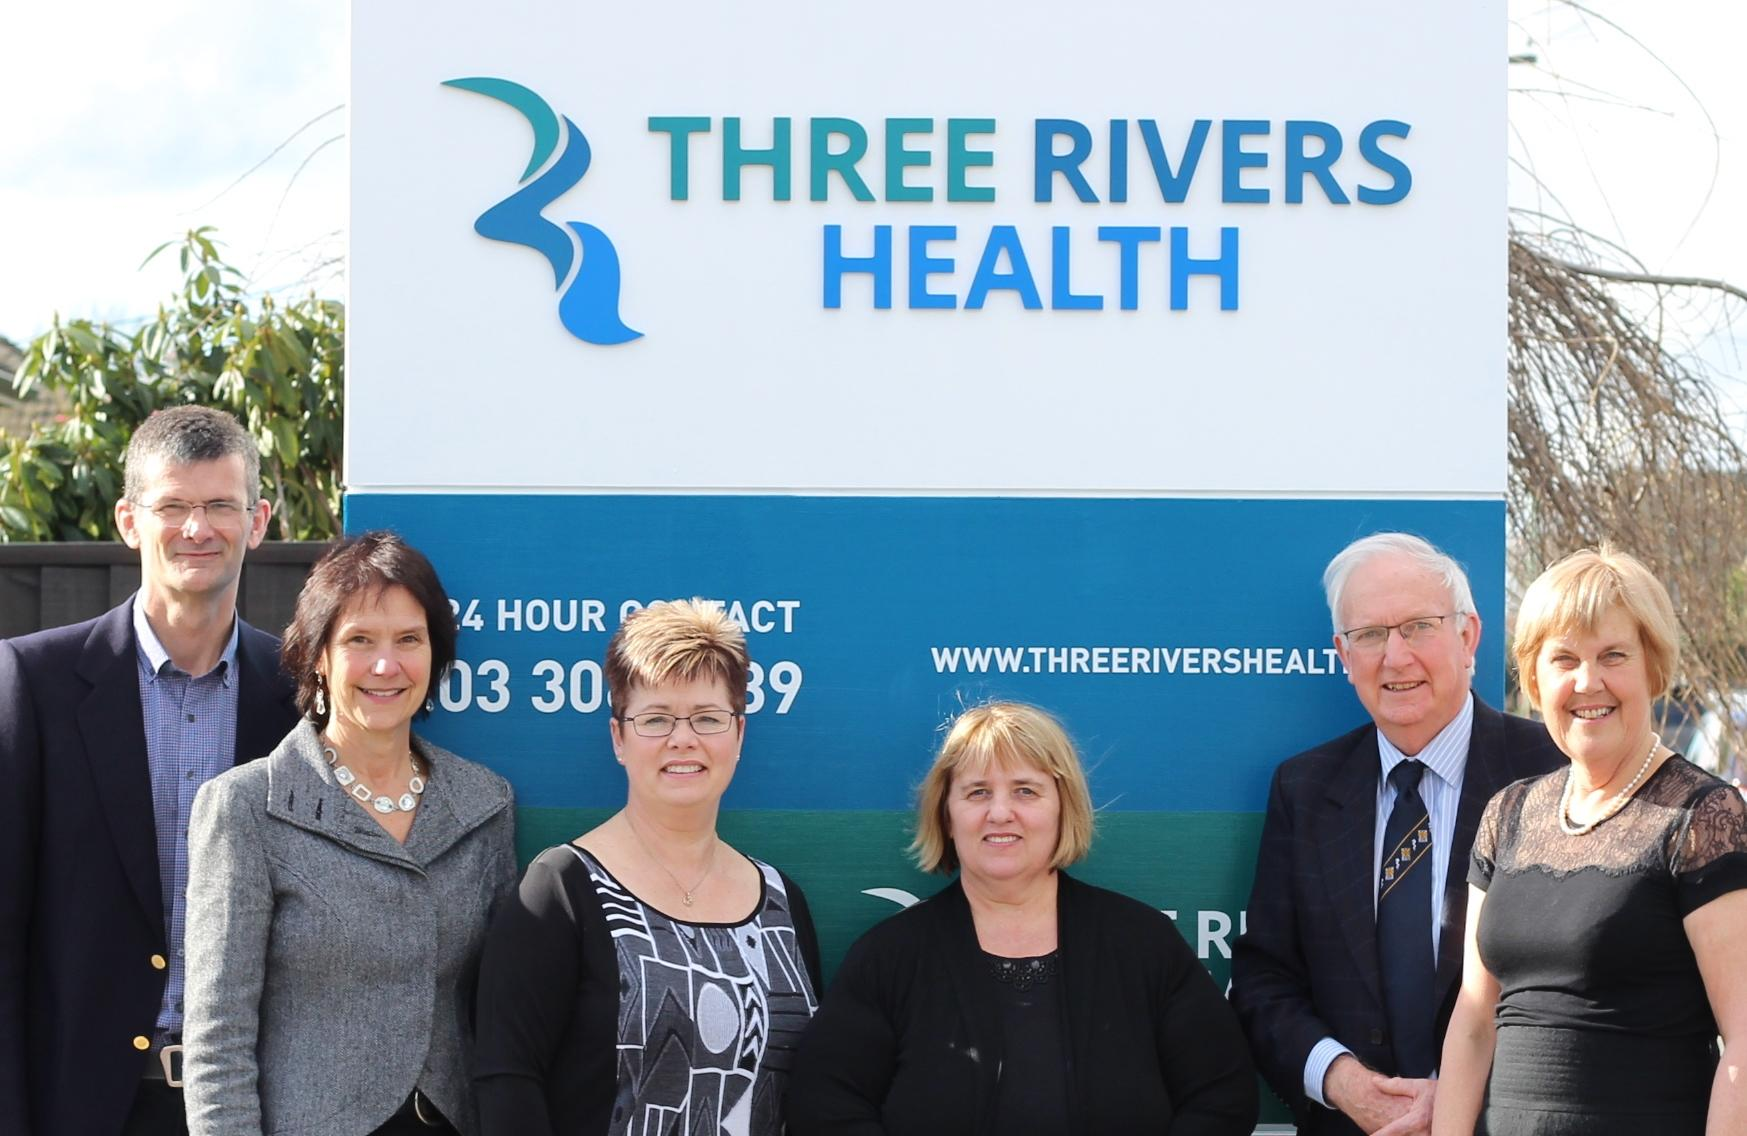 Malcolm Wootton, GP, Sherry Wootton, Penny Holdaway, GP, Nicky Webb, practice manager, John Guthrie, GP, Margaret Guthrie